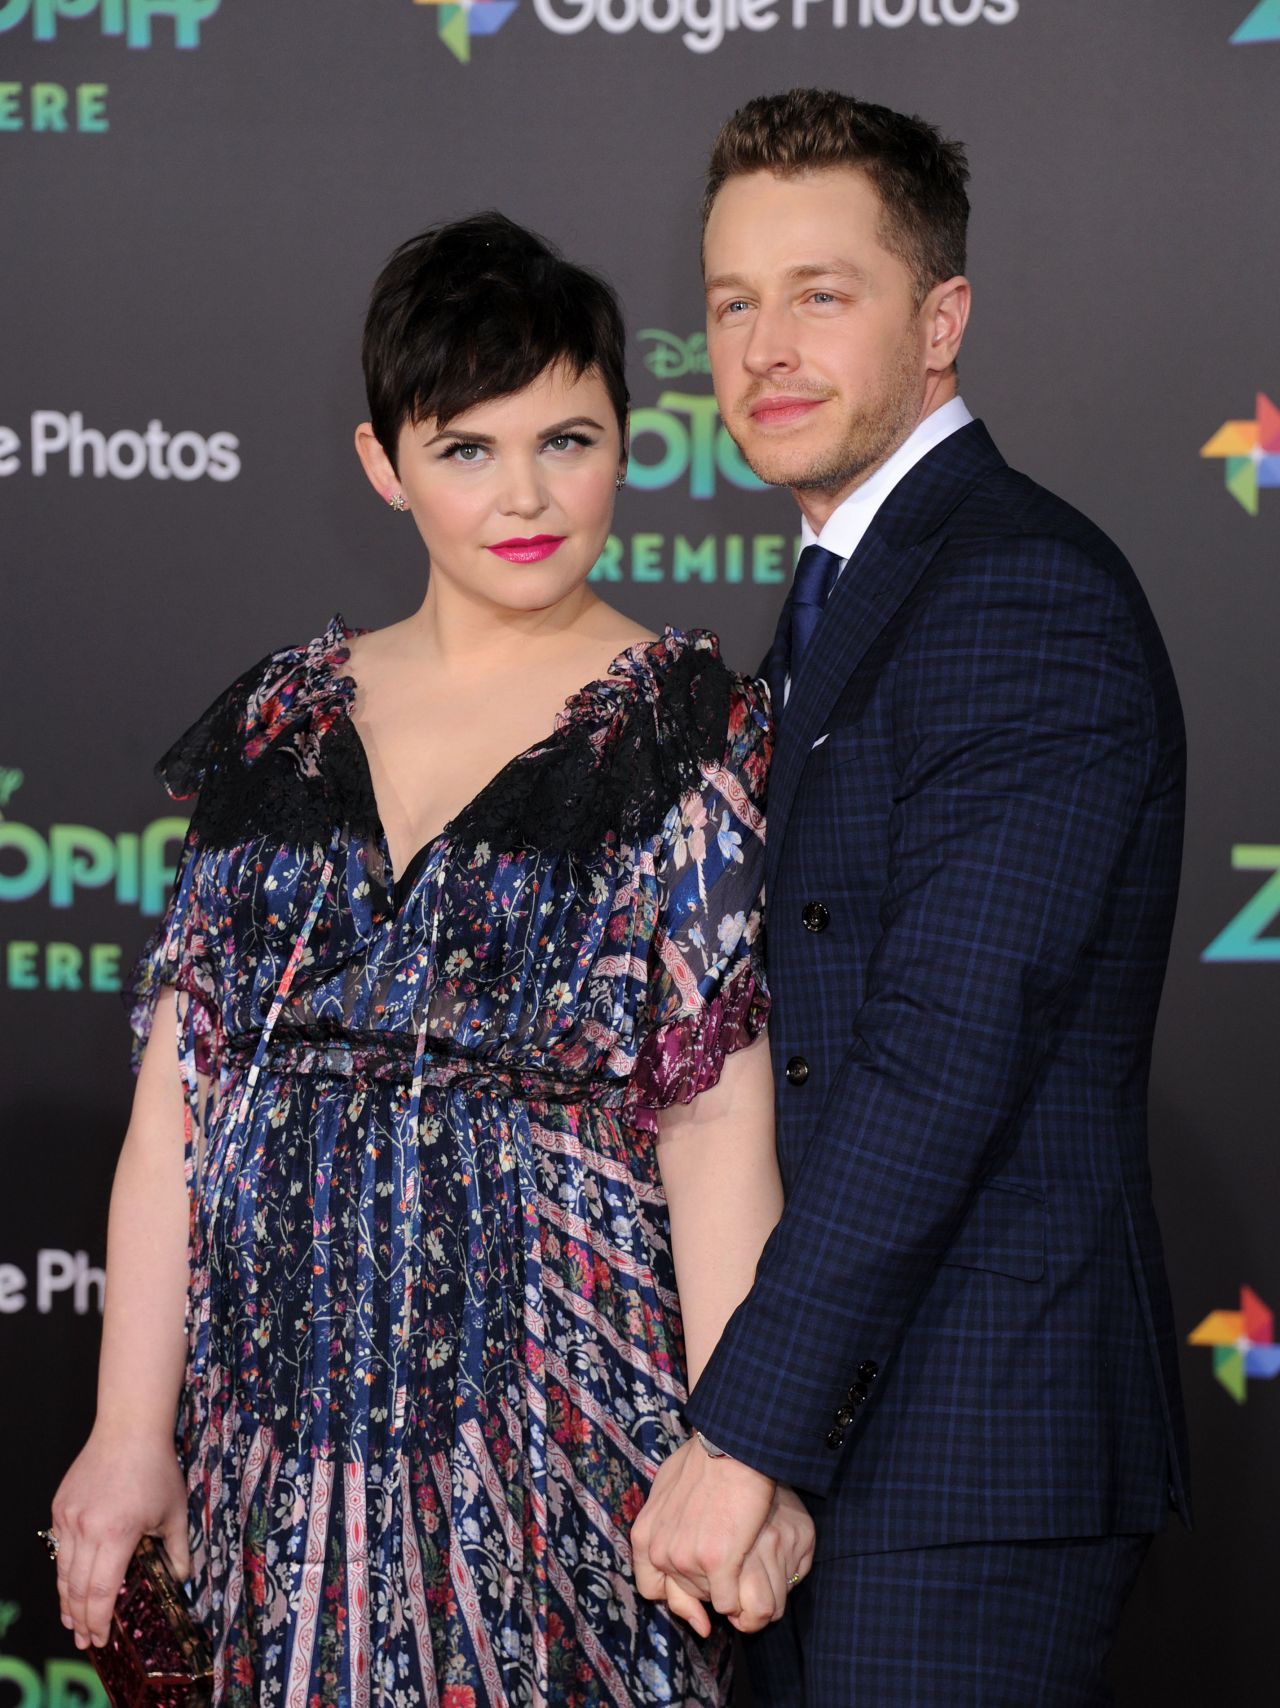 Ginnifer Goodwin Zootopia Premiere In Hollywood Ca